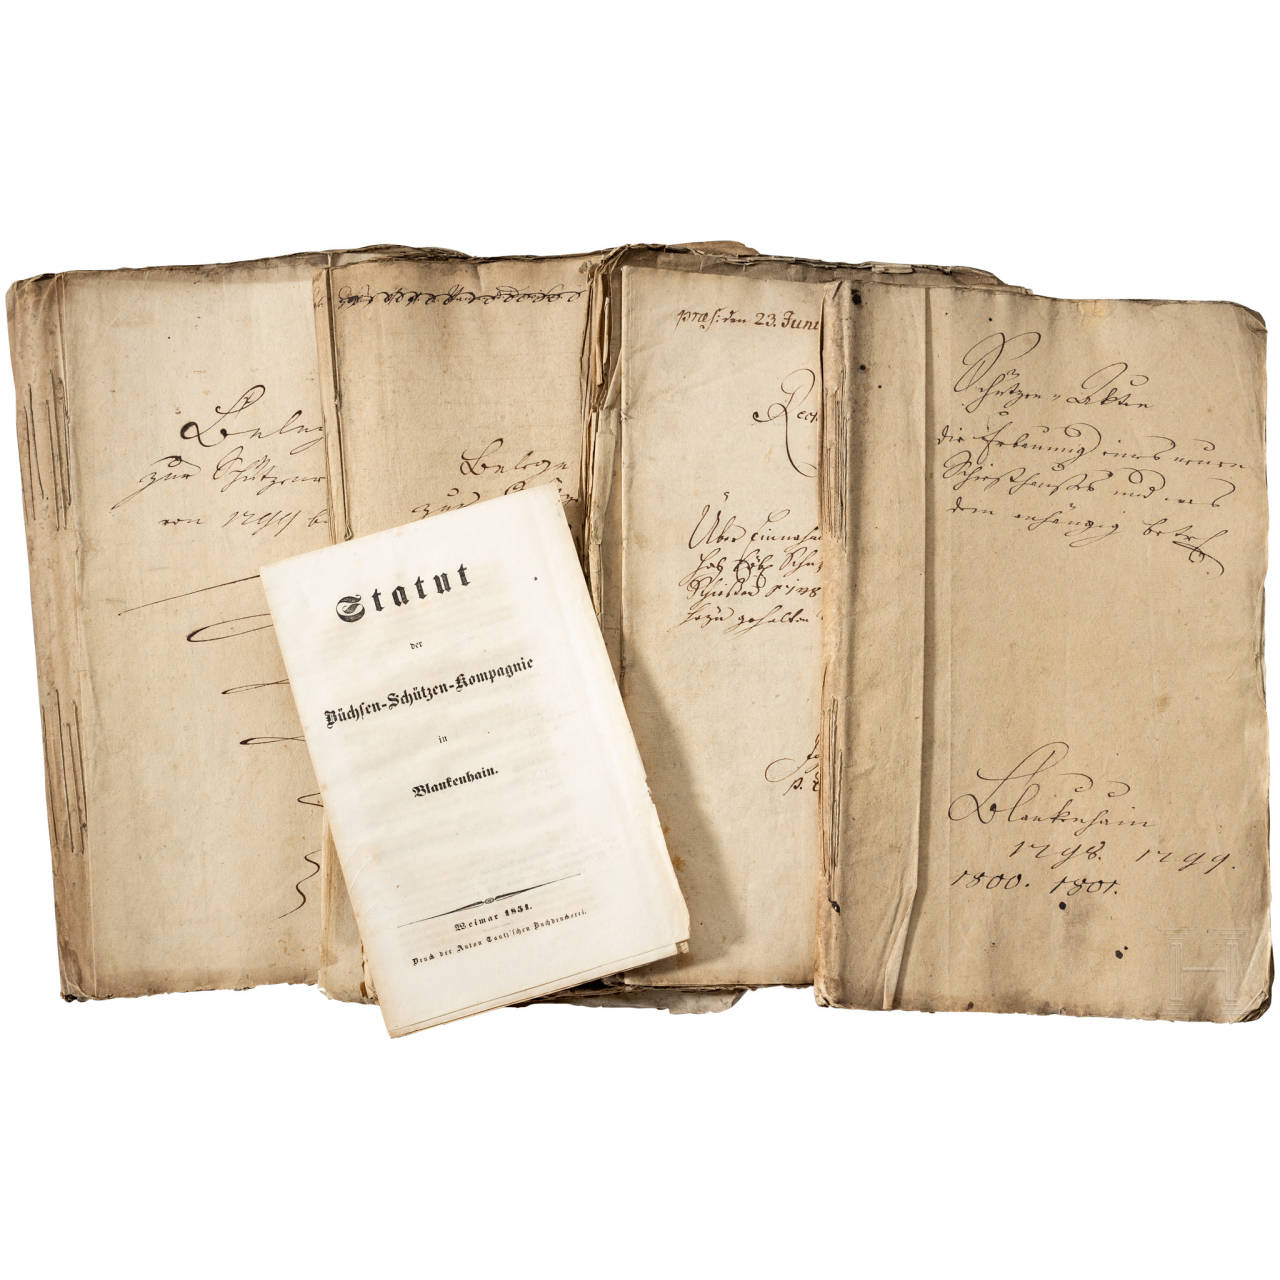 Documents of the riflemen's company Blankenhain, 1747 to 1801